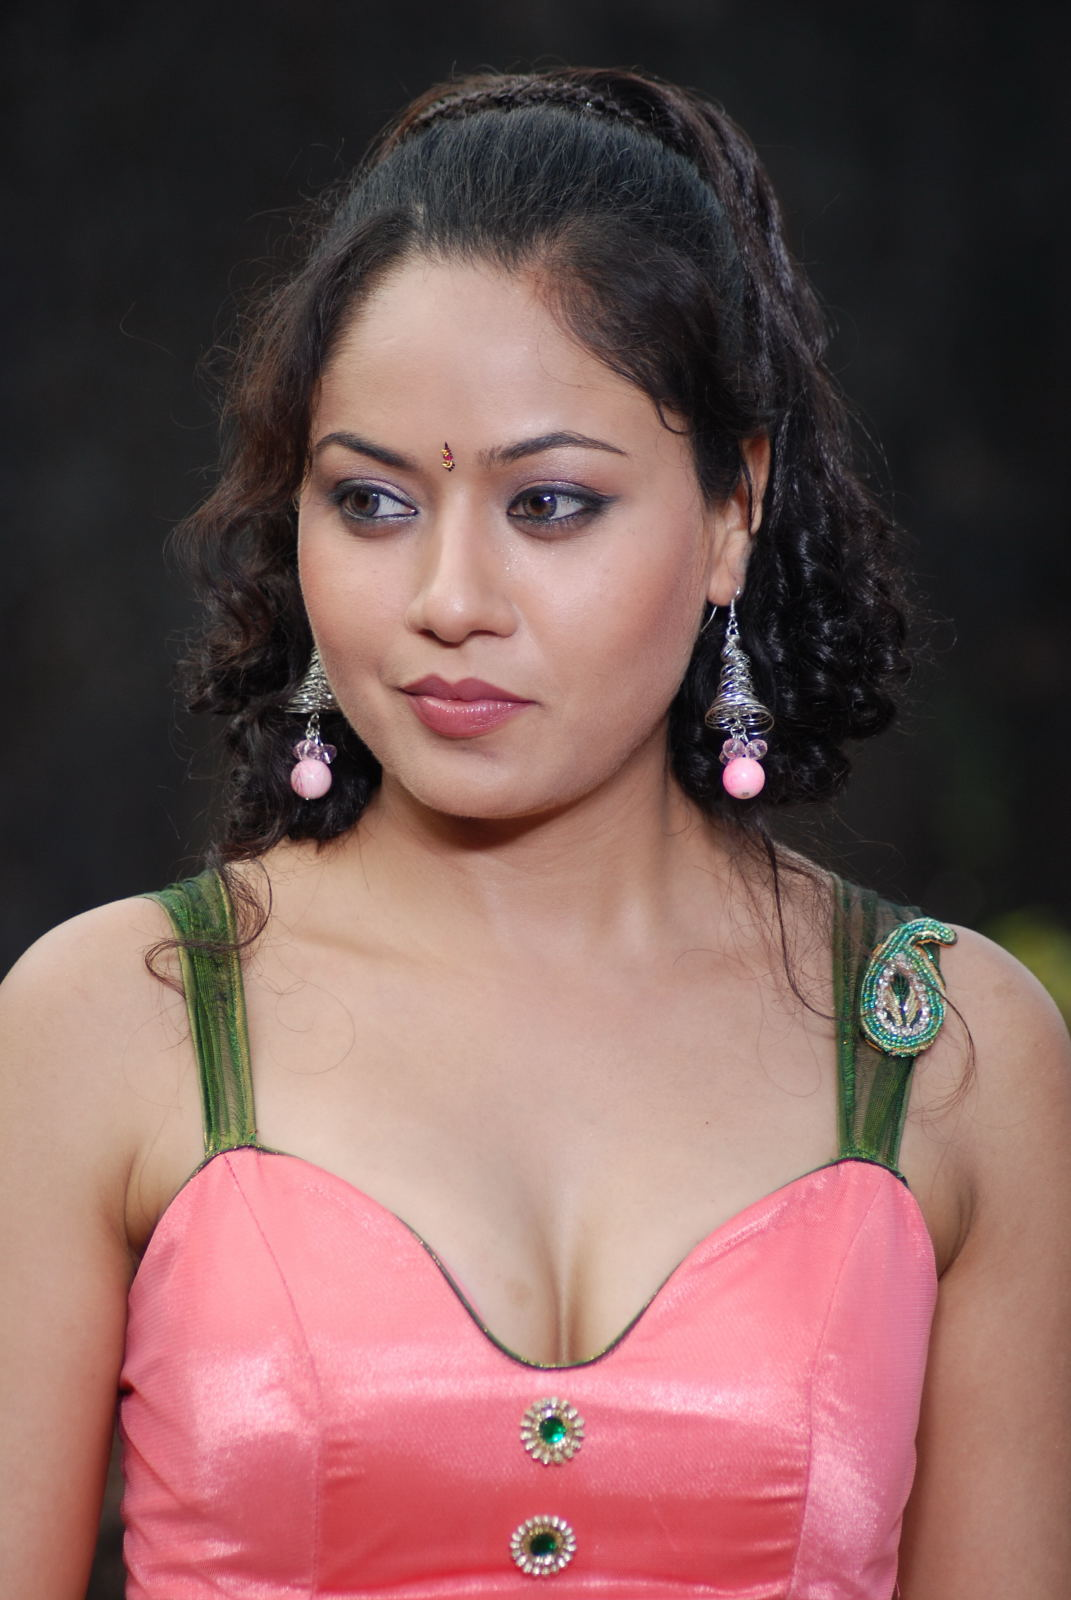 Anu Apoorva Spicy Boobs